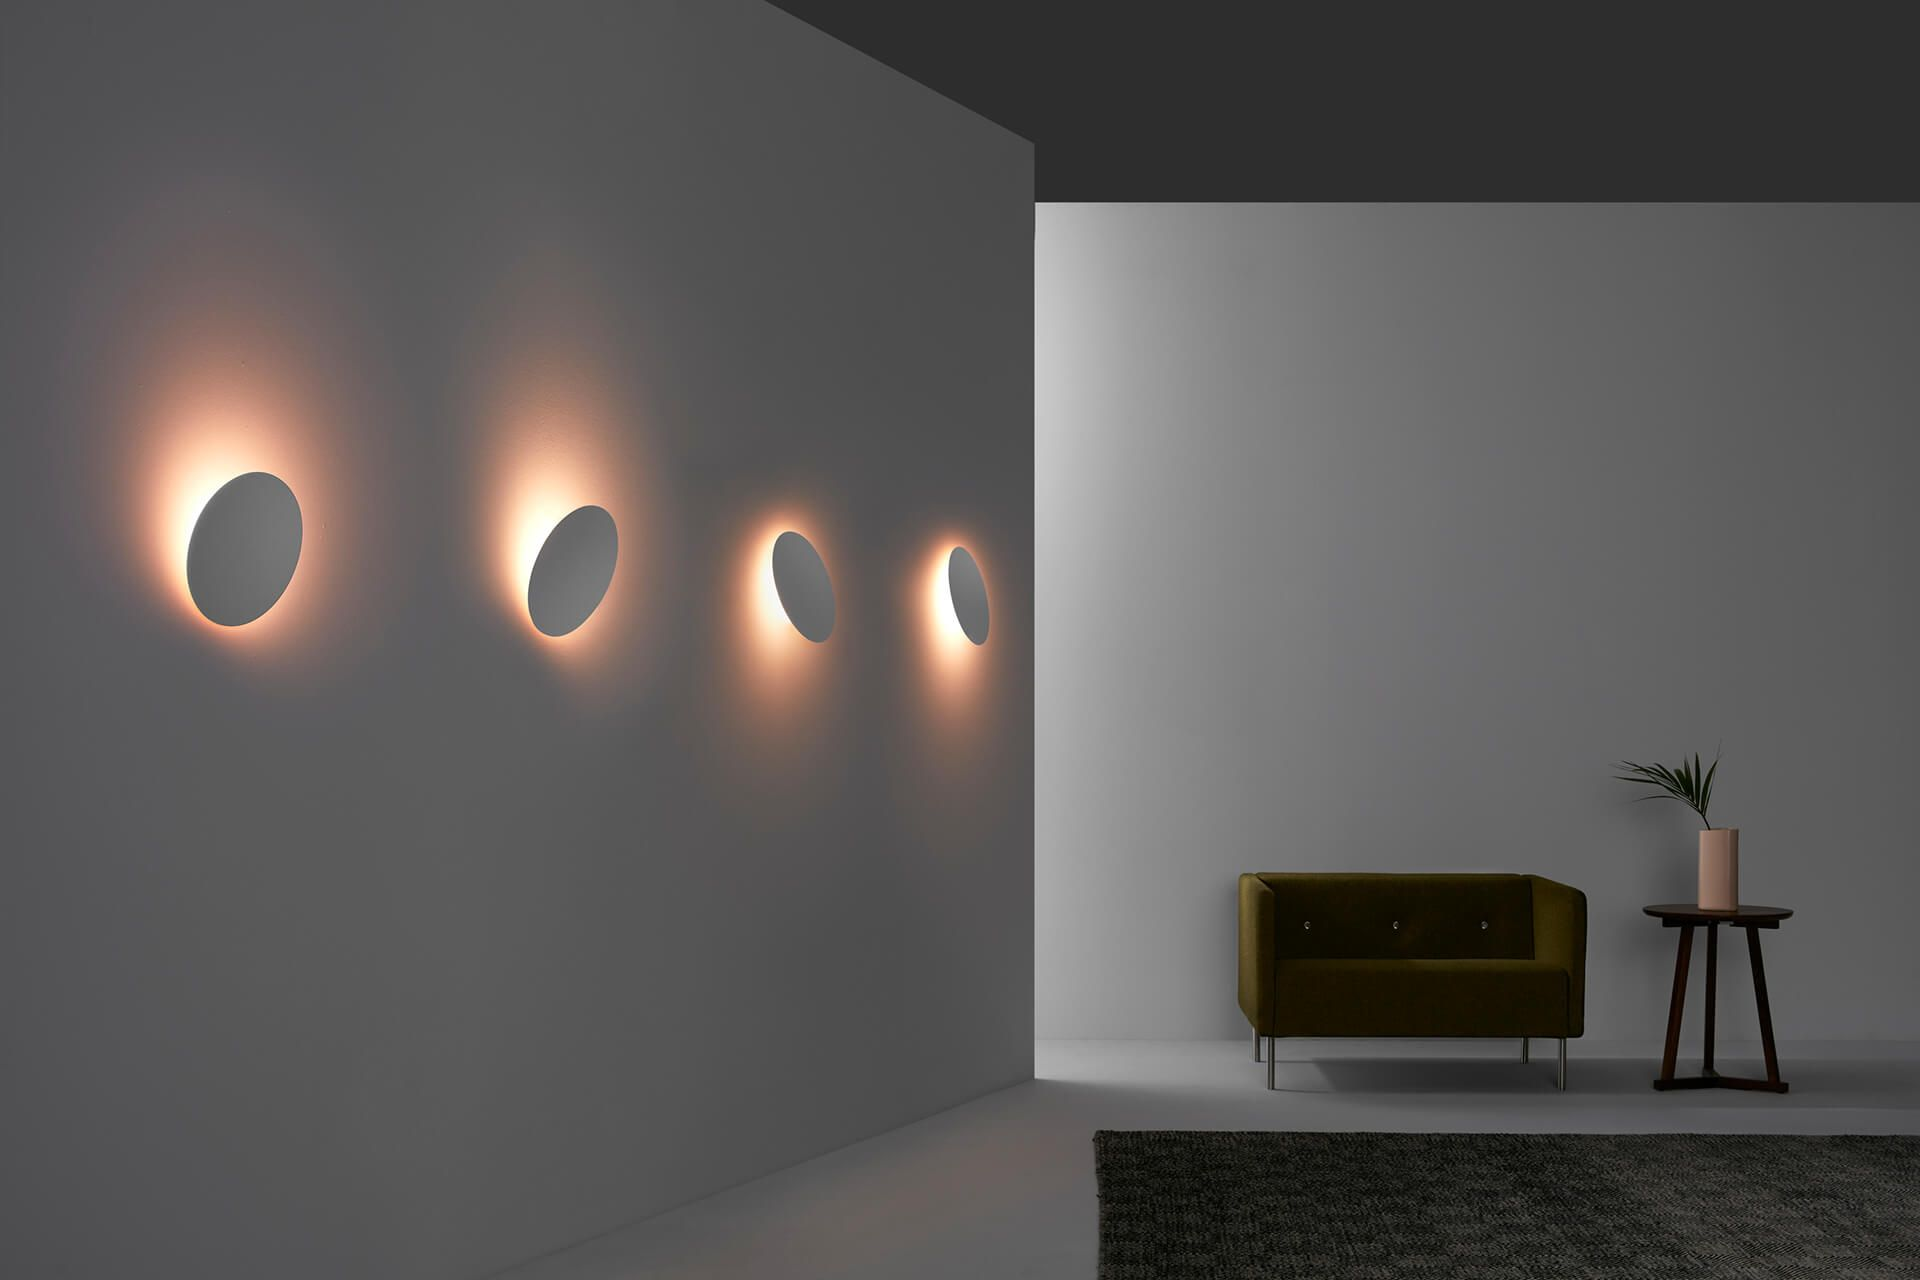 Light Therapy How Light Is Working To Change Our Mood Light